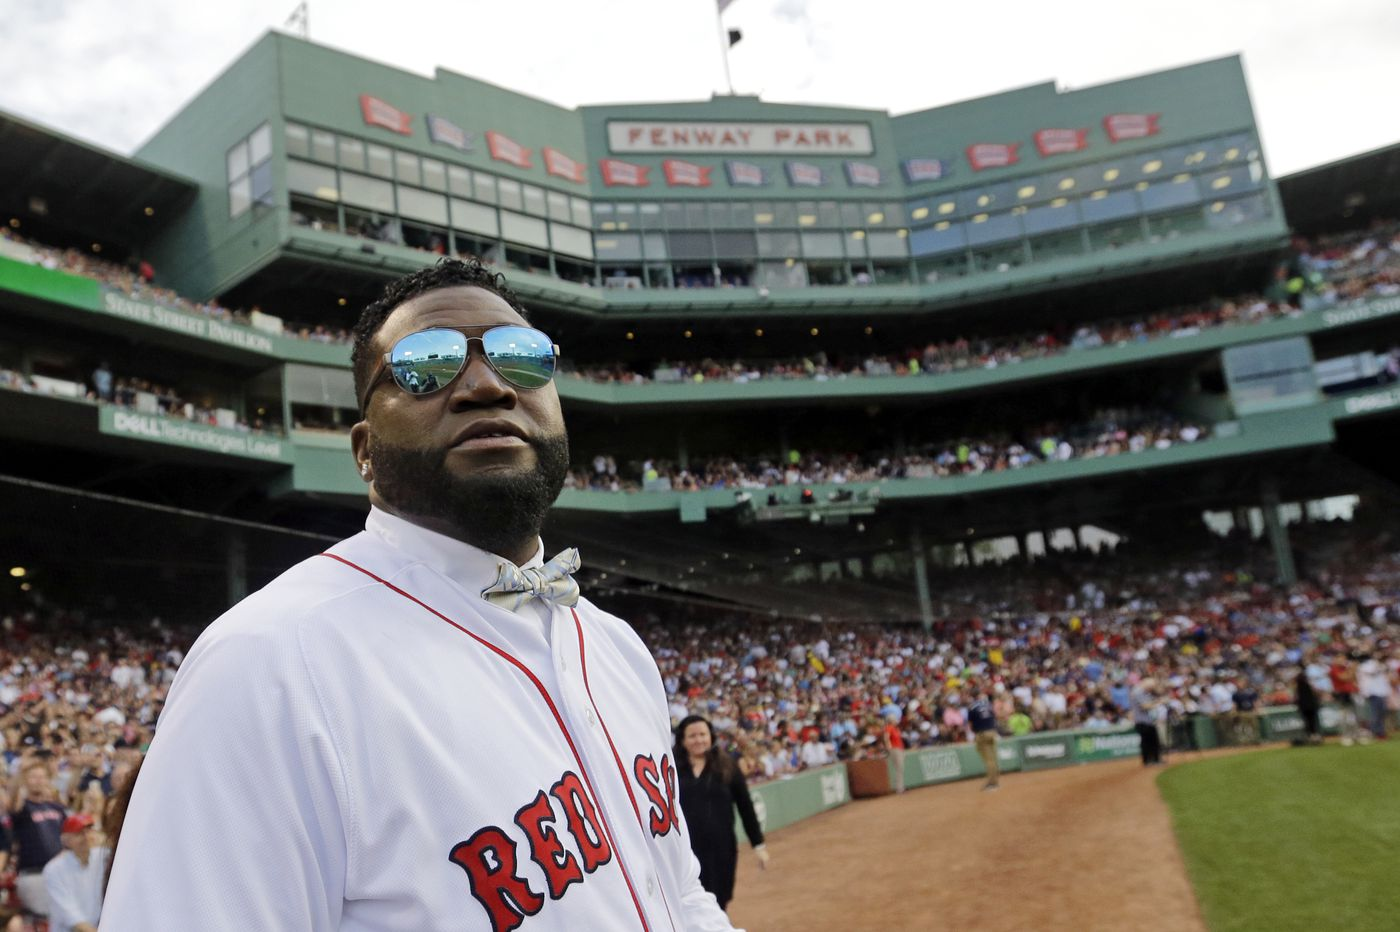 Former Red Sox star David Ortiz recovering after being shot in Dominican Republic